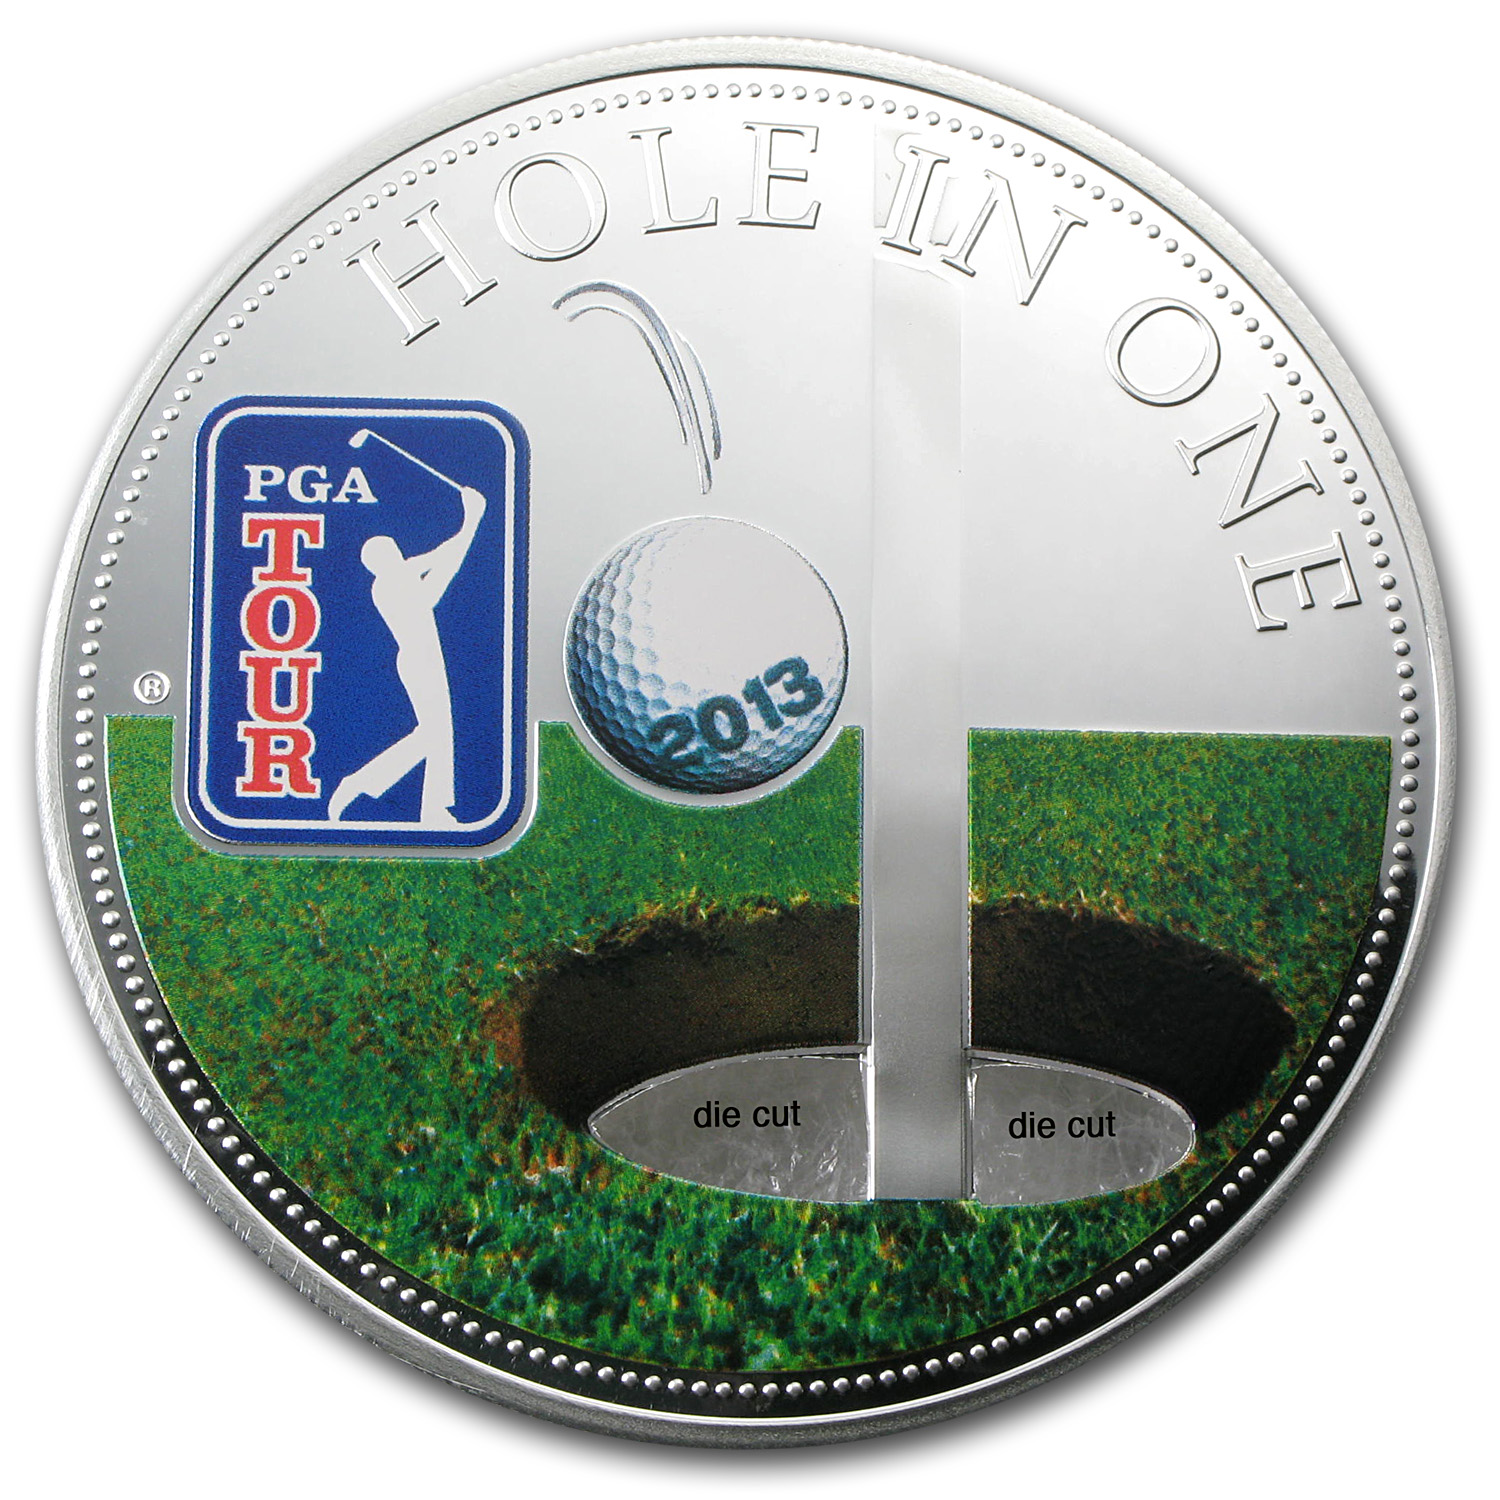 Cook Islands 2013 Proof Silver $5 PGA Tour - Hole in One